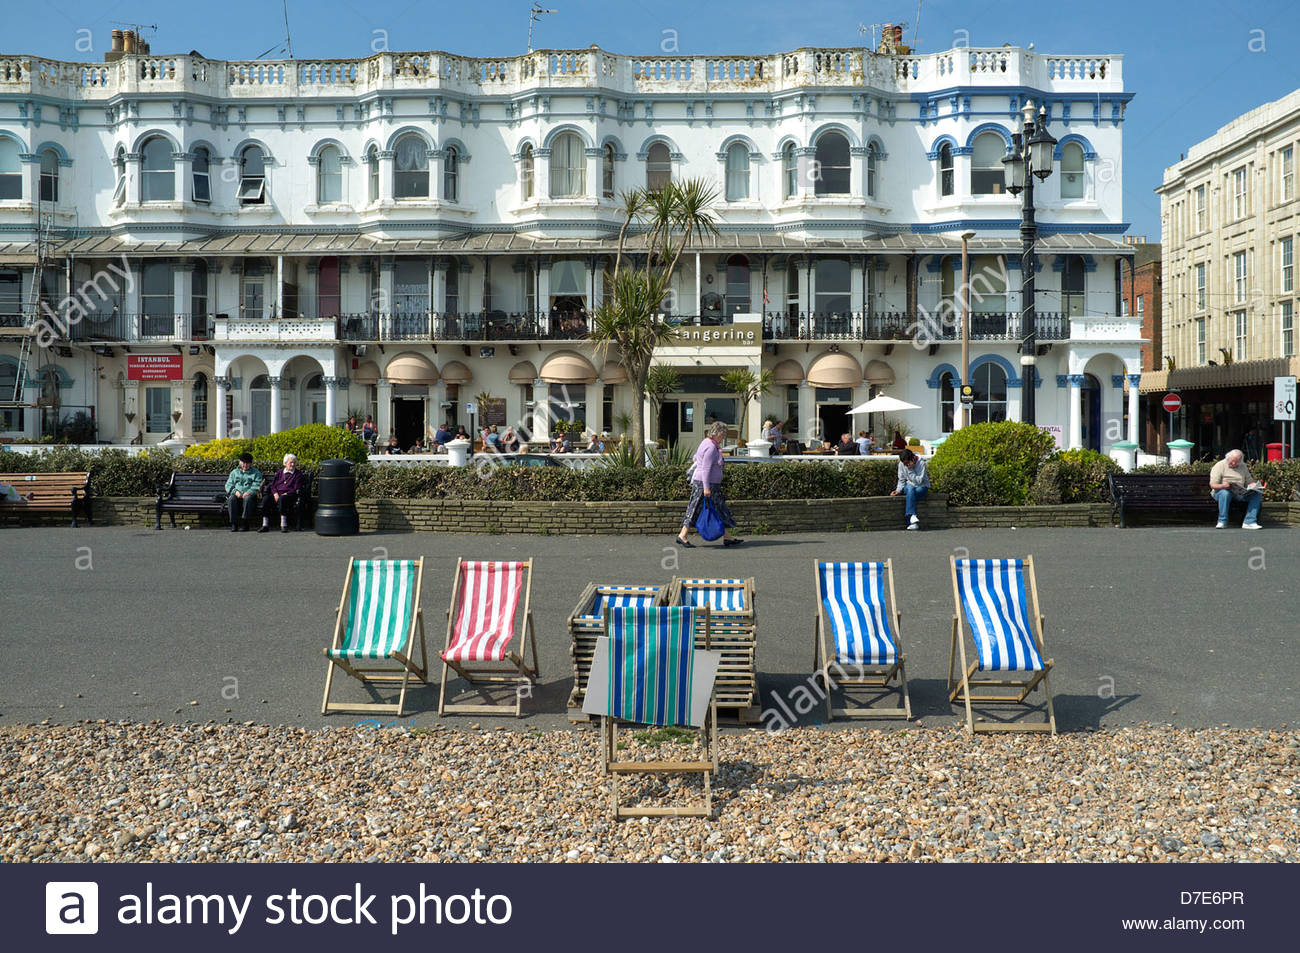 Worthing seafront in West Sussex, UK. - Stock Image